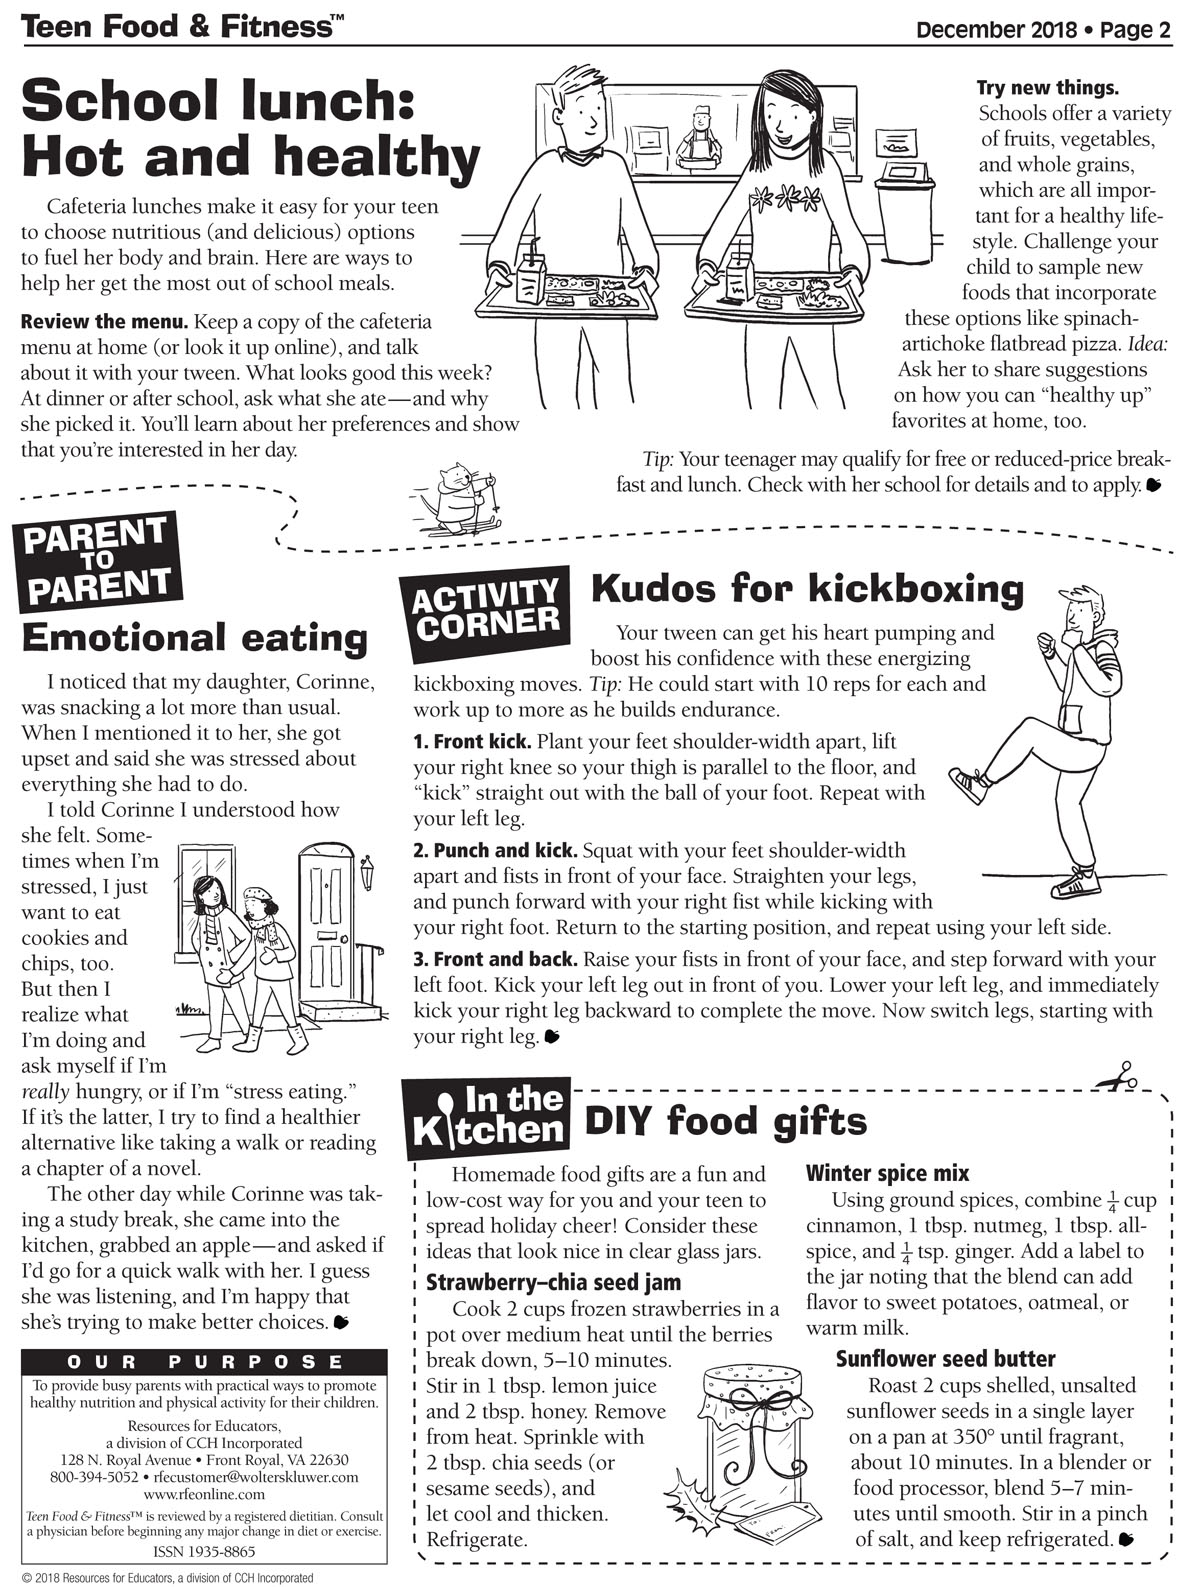 Food & Fitness newsletter December issue